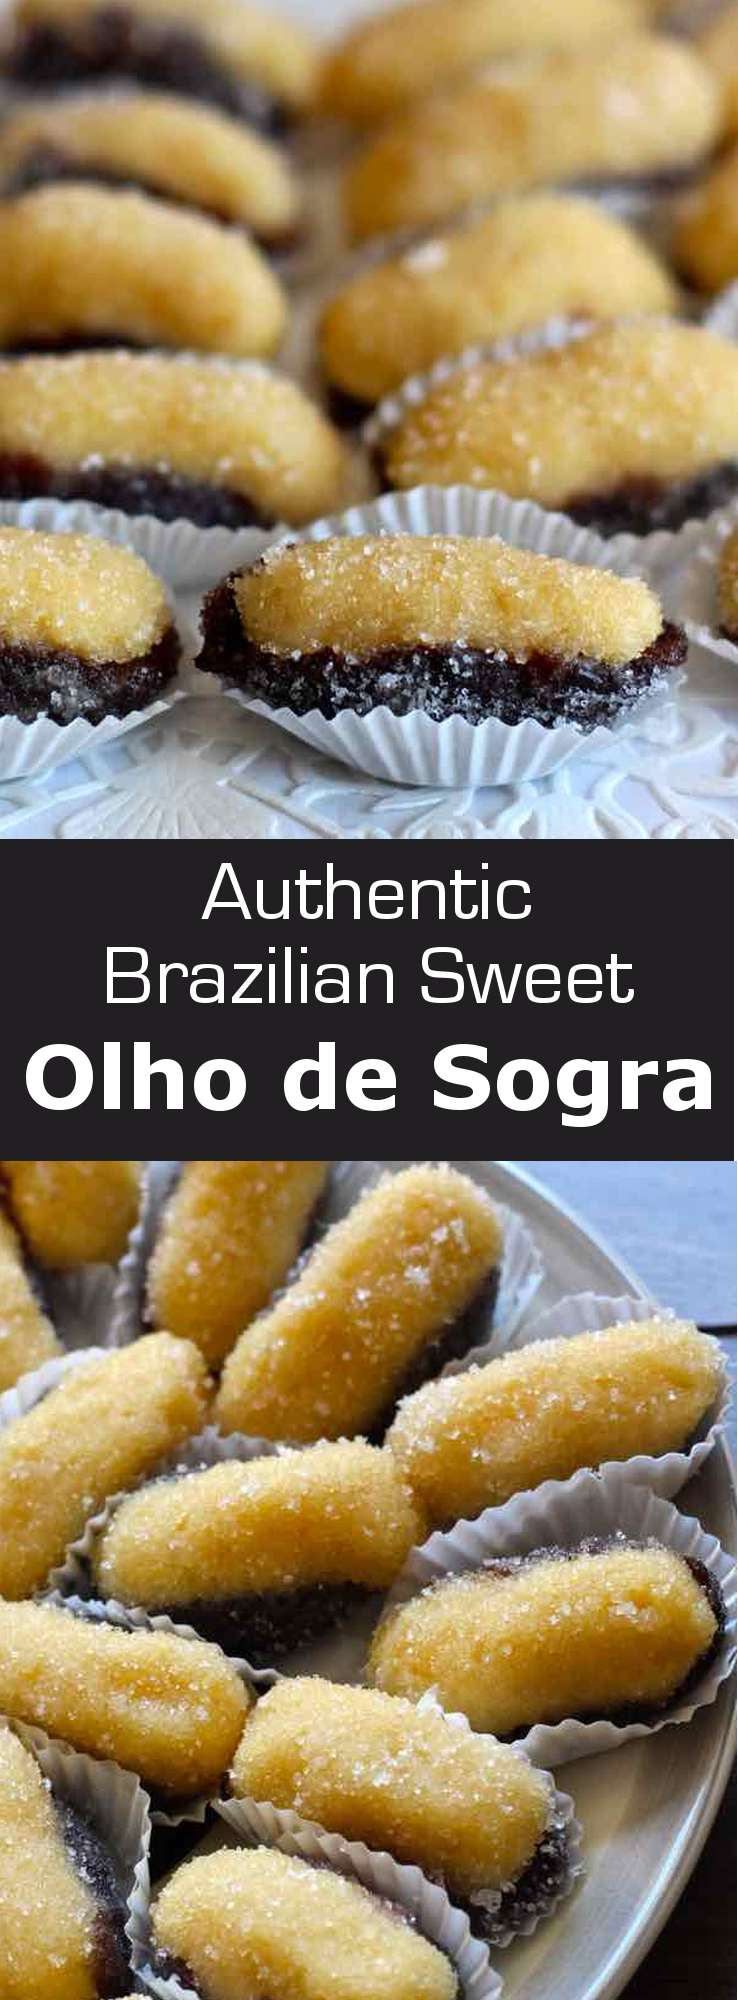 Olho de Sogra is a famous Brazilian confectionery prepared with beijinho, a mixture of coconut and condensed milk, stuffed in a half prune. #dessert #Brazil #196flavors